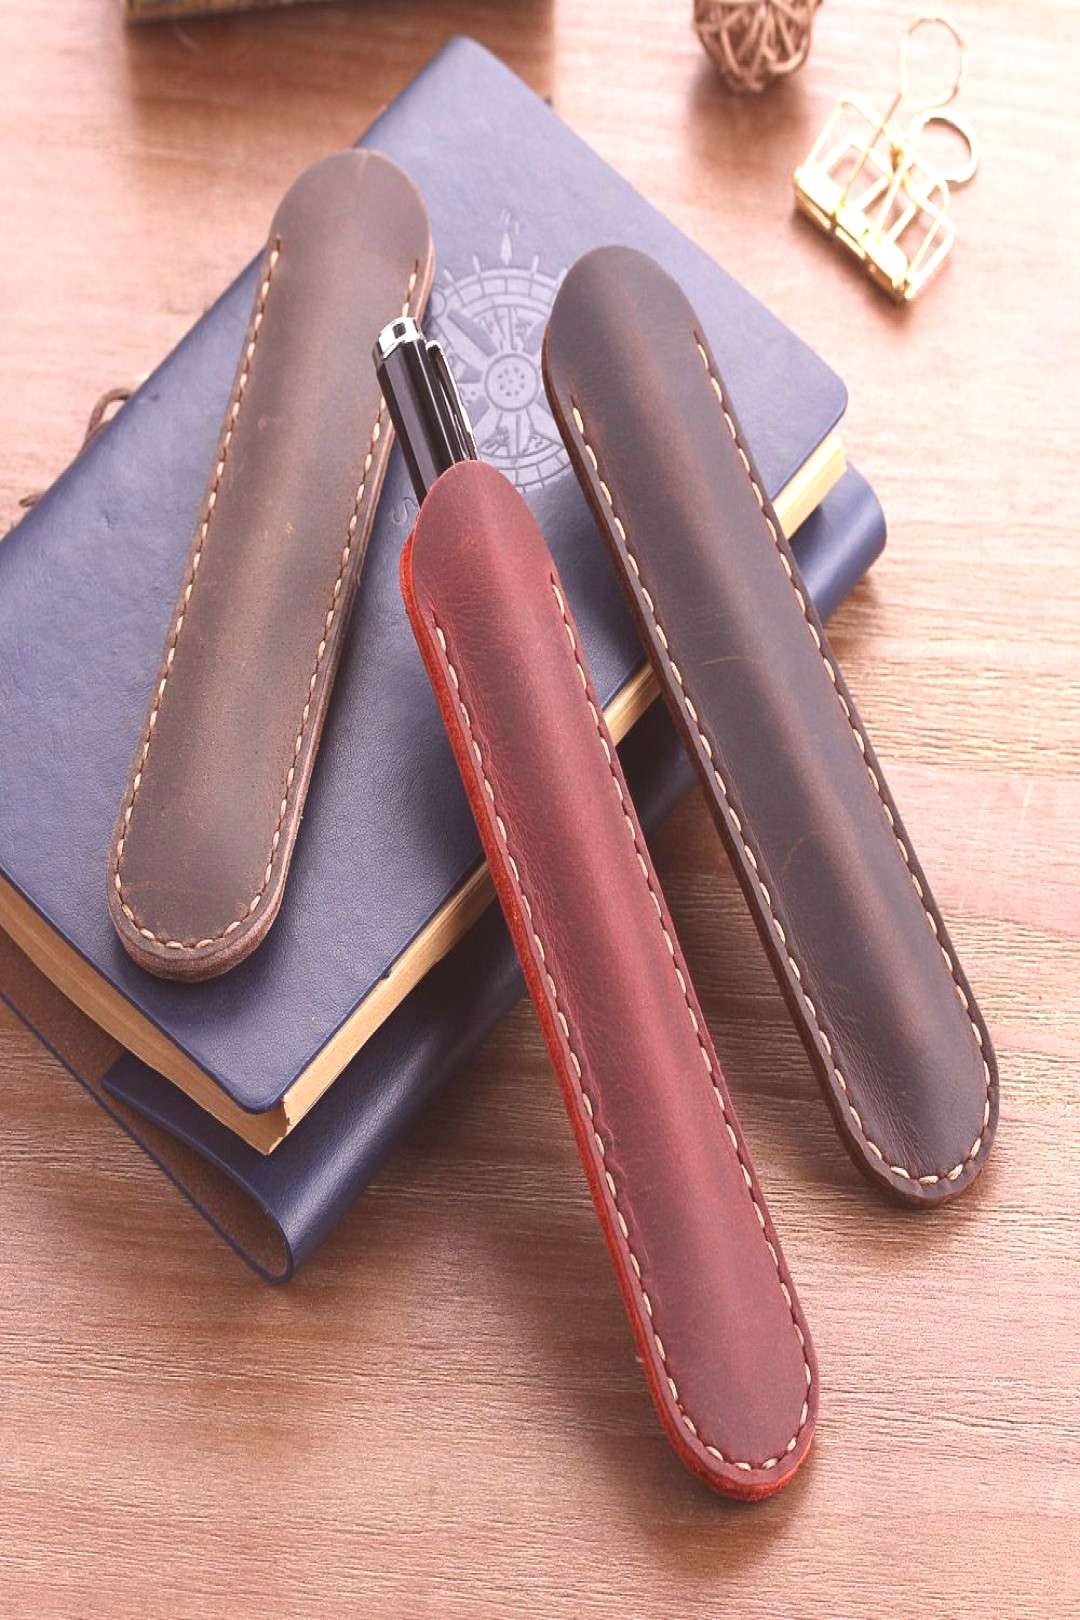 Vintage Retro Style Accessories For Travel Journal Handmade Genuine Leather Pencil Bag, Cowhide Fou